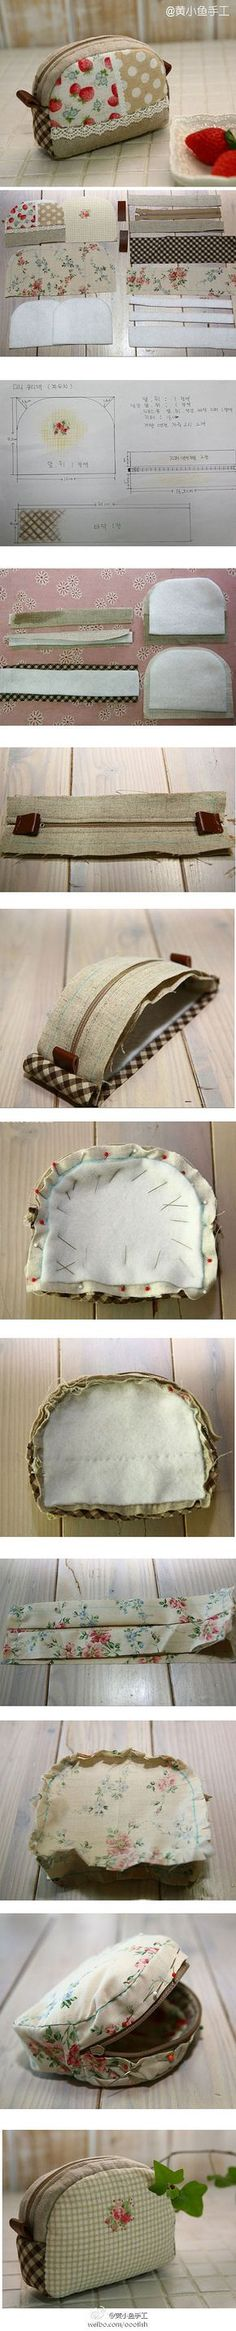 Pouch tutorial, sewing tutorial, makeup bag, sewing bag